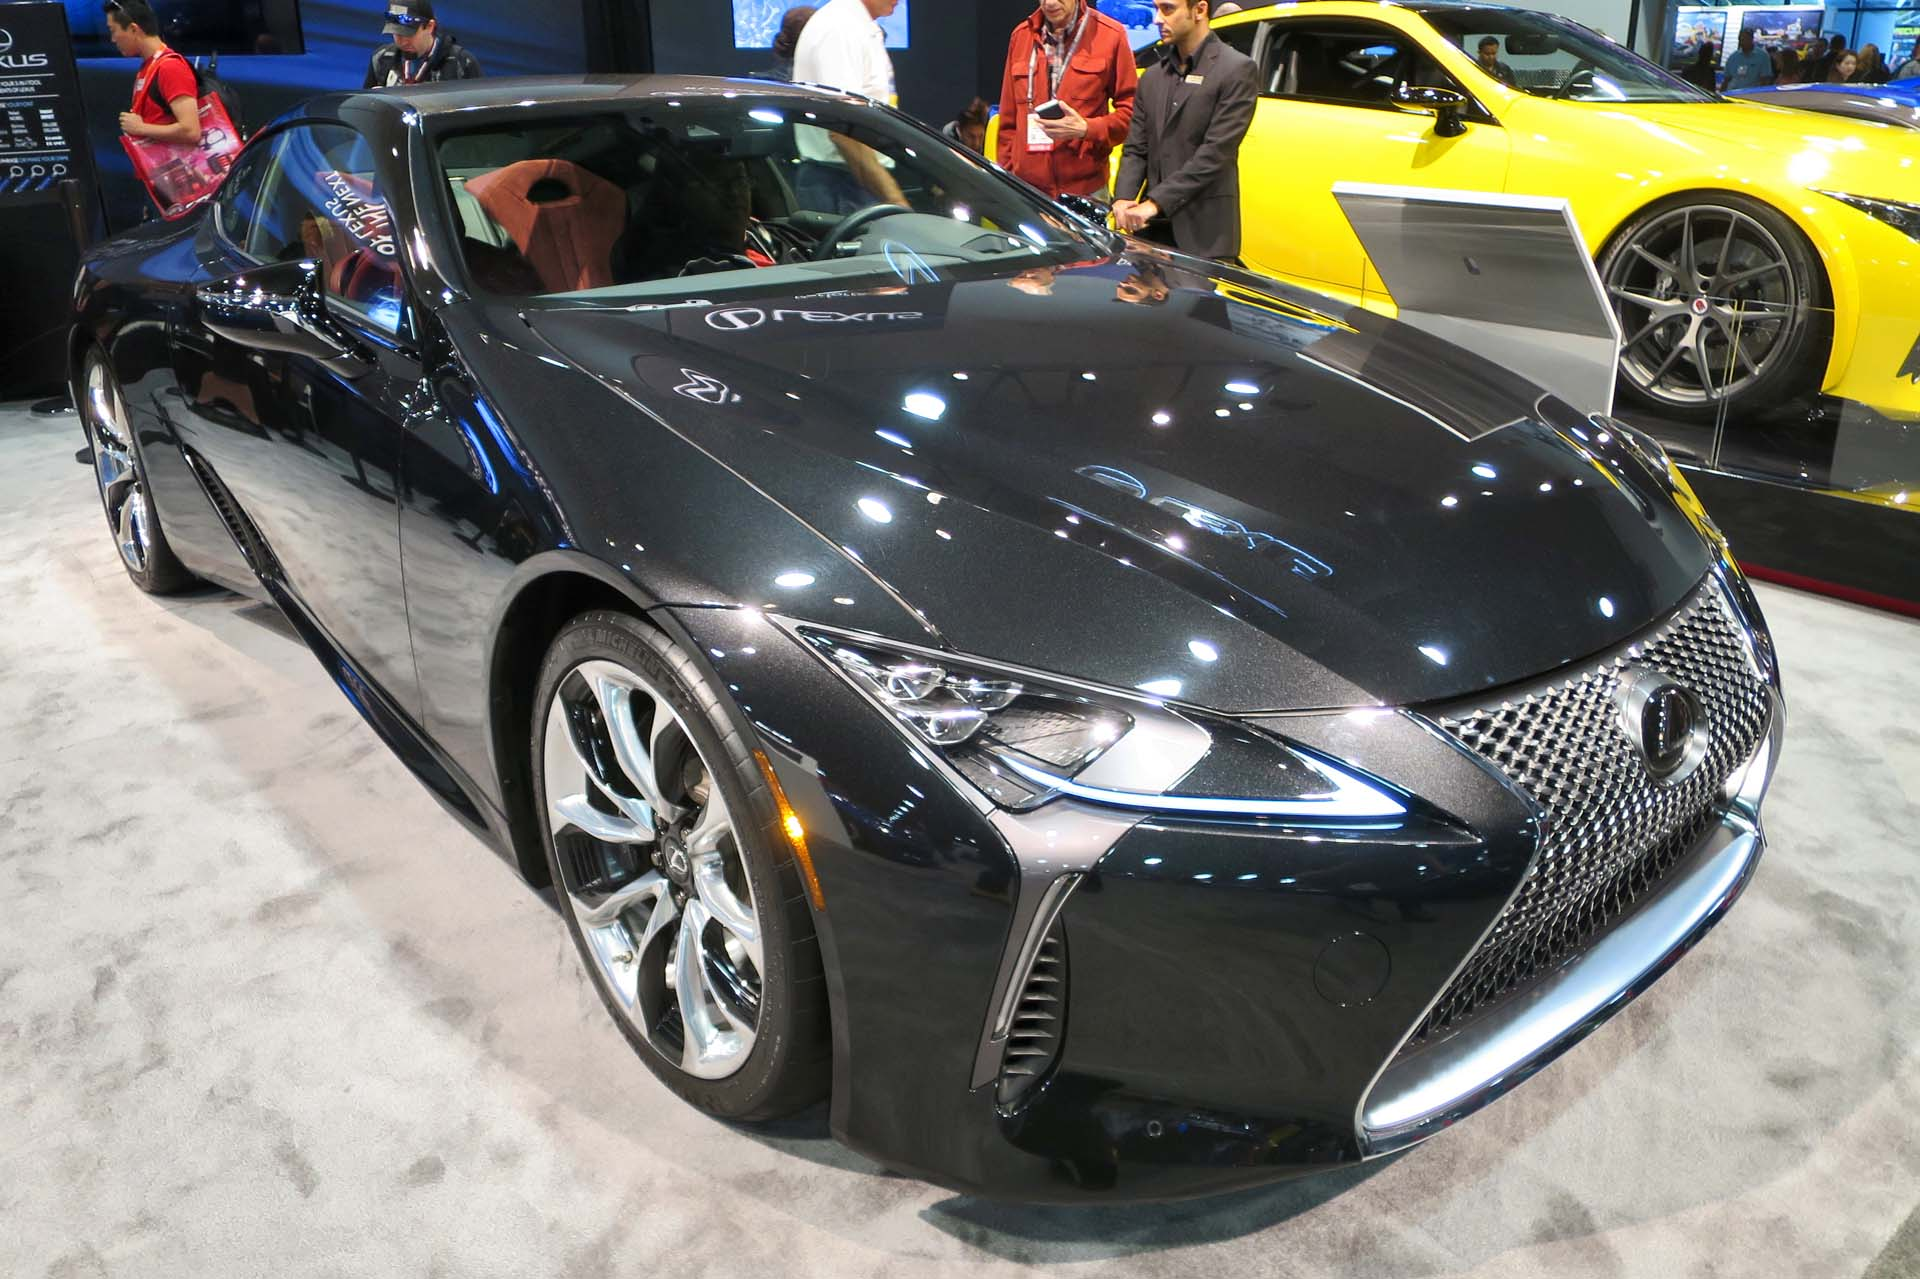 Lexus introduced its new LC 500 at the SEMA show.